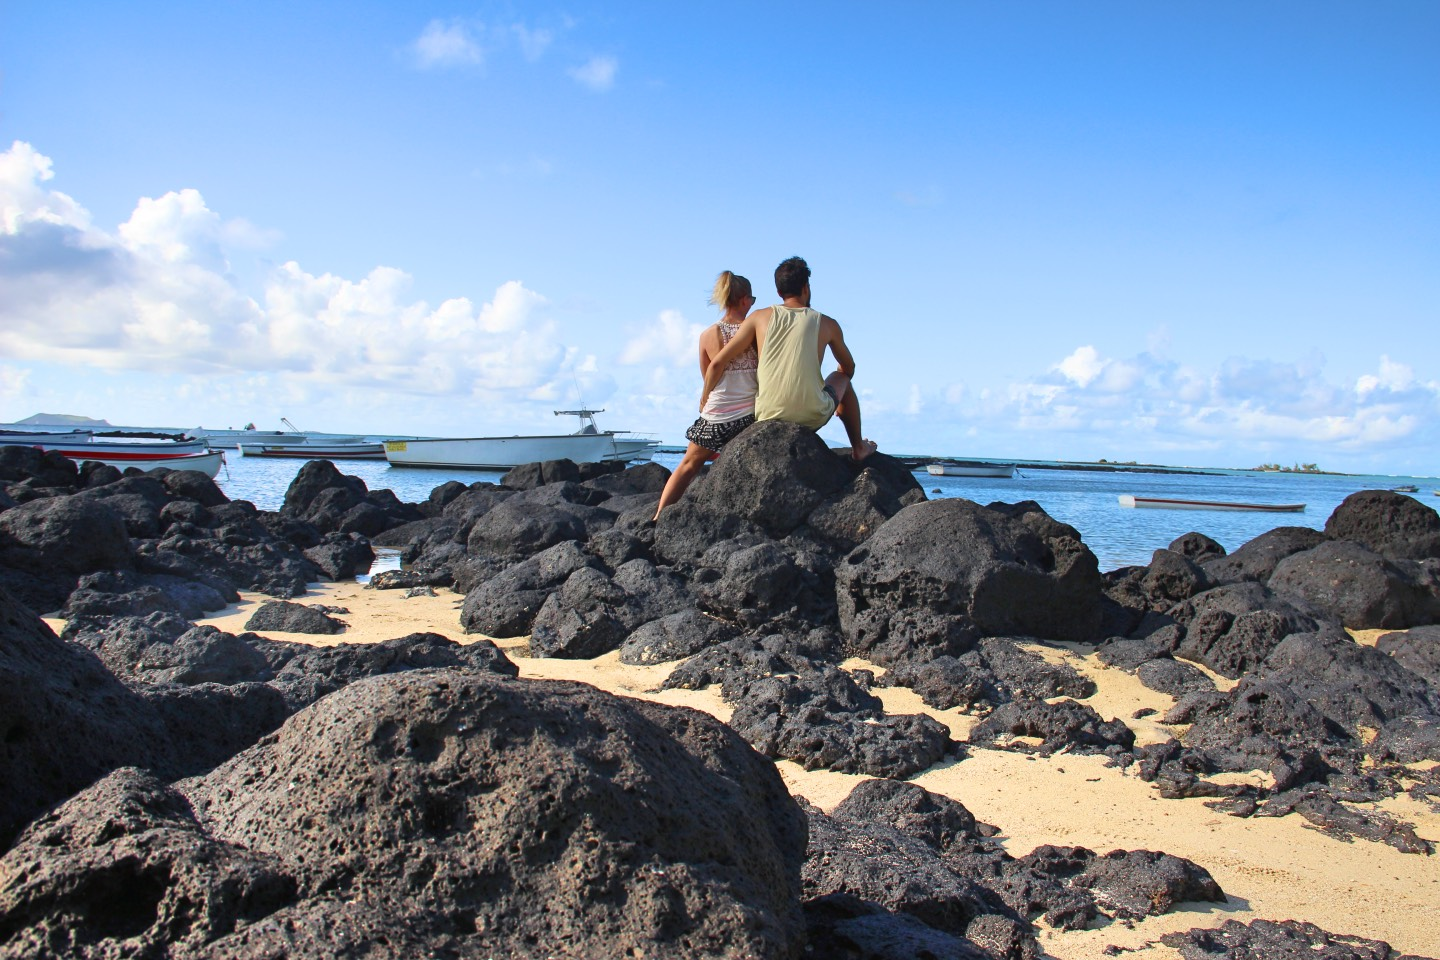 Weltreise_Backpacking_Mauritius_Norden